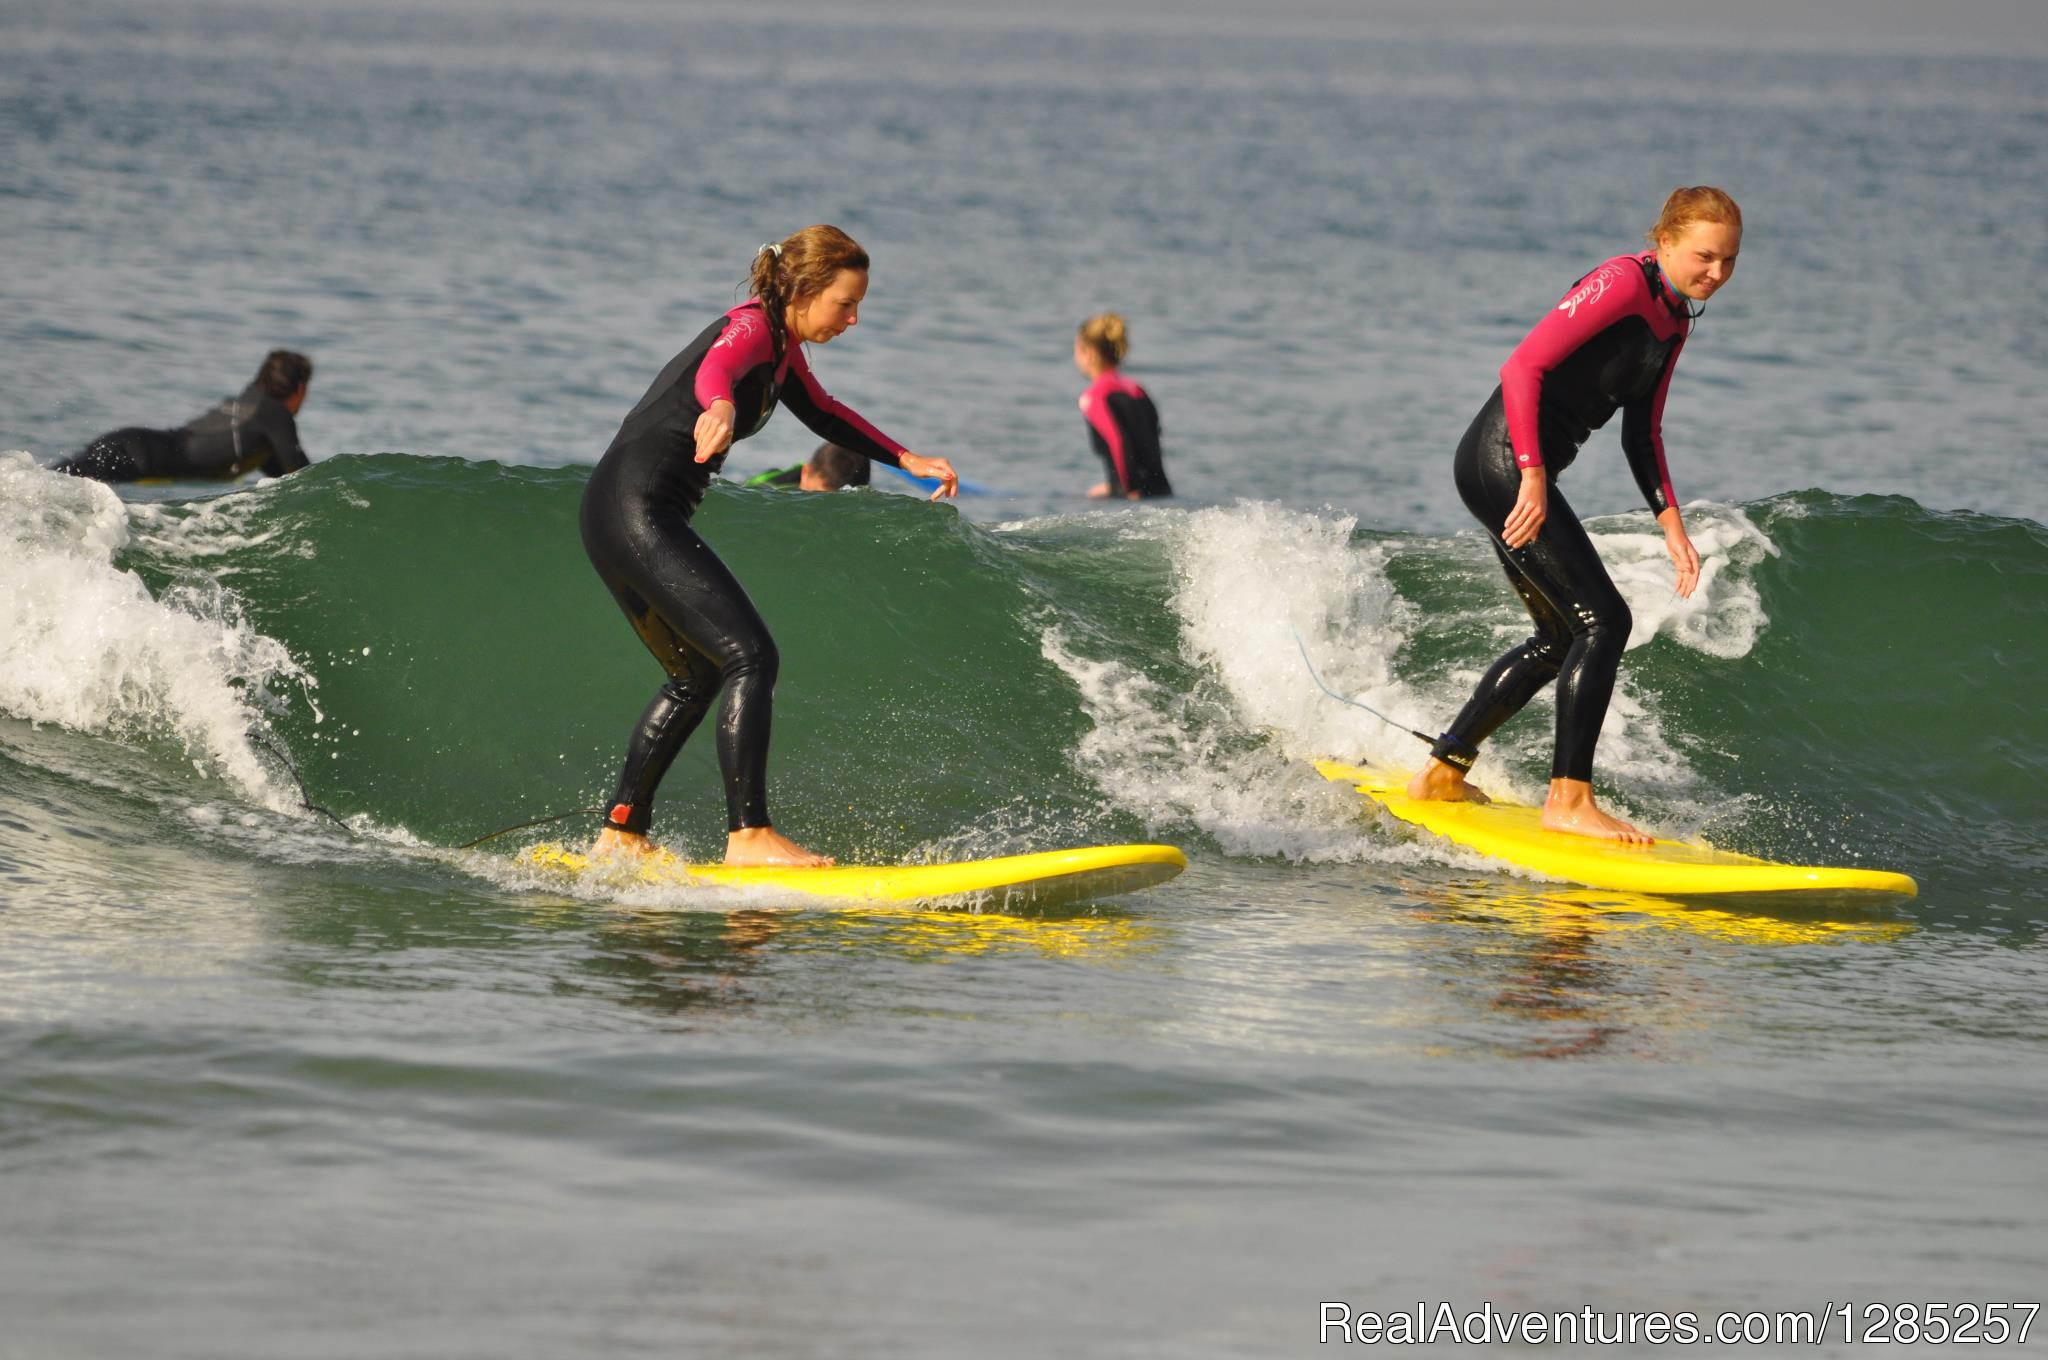 Perfect Girls Riding Pefect Waves